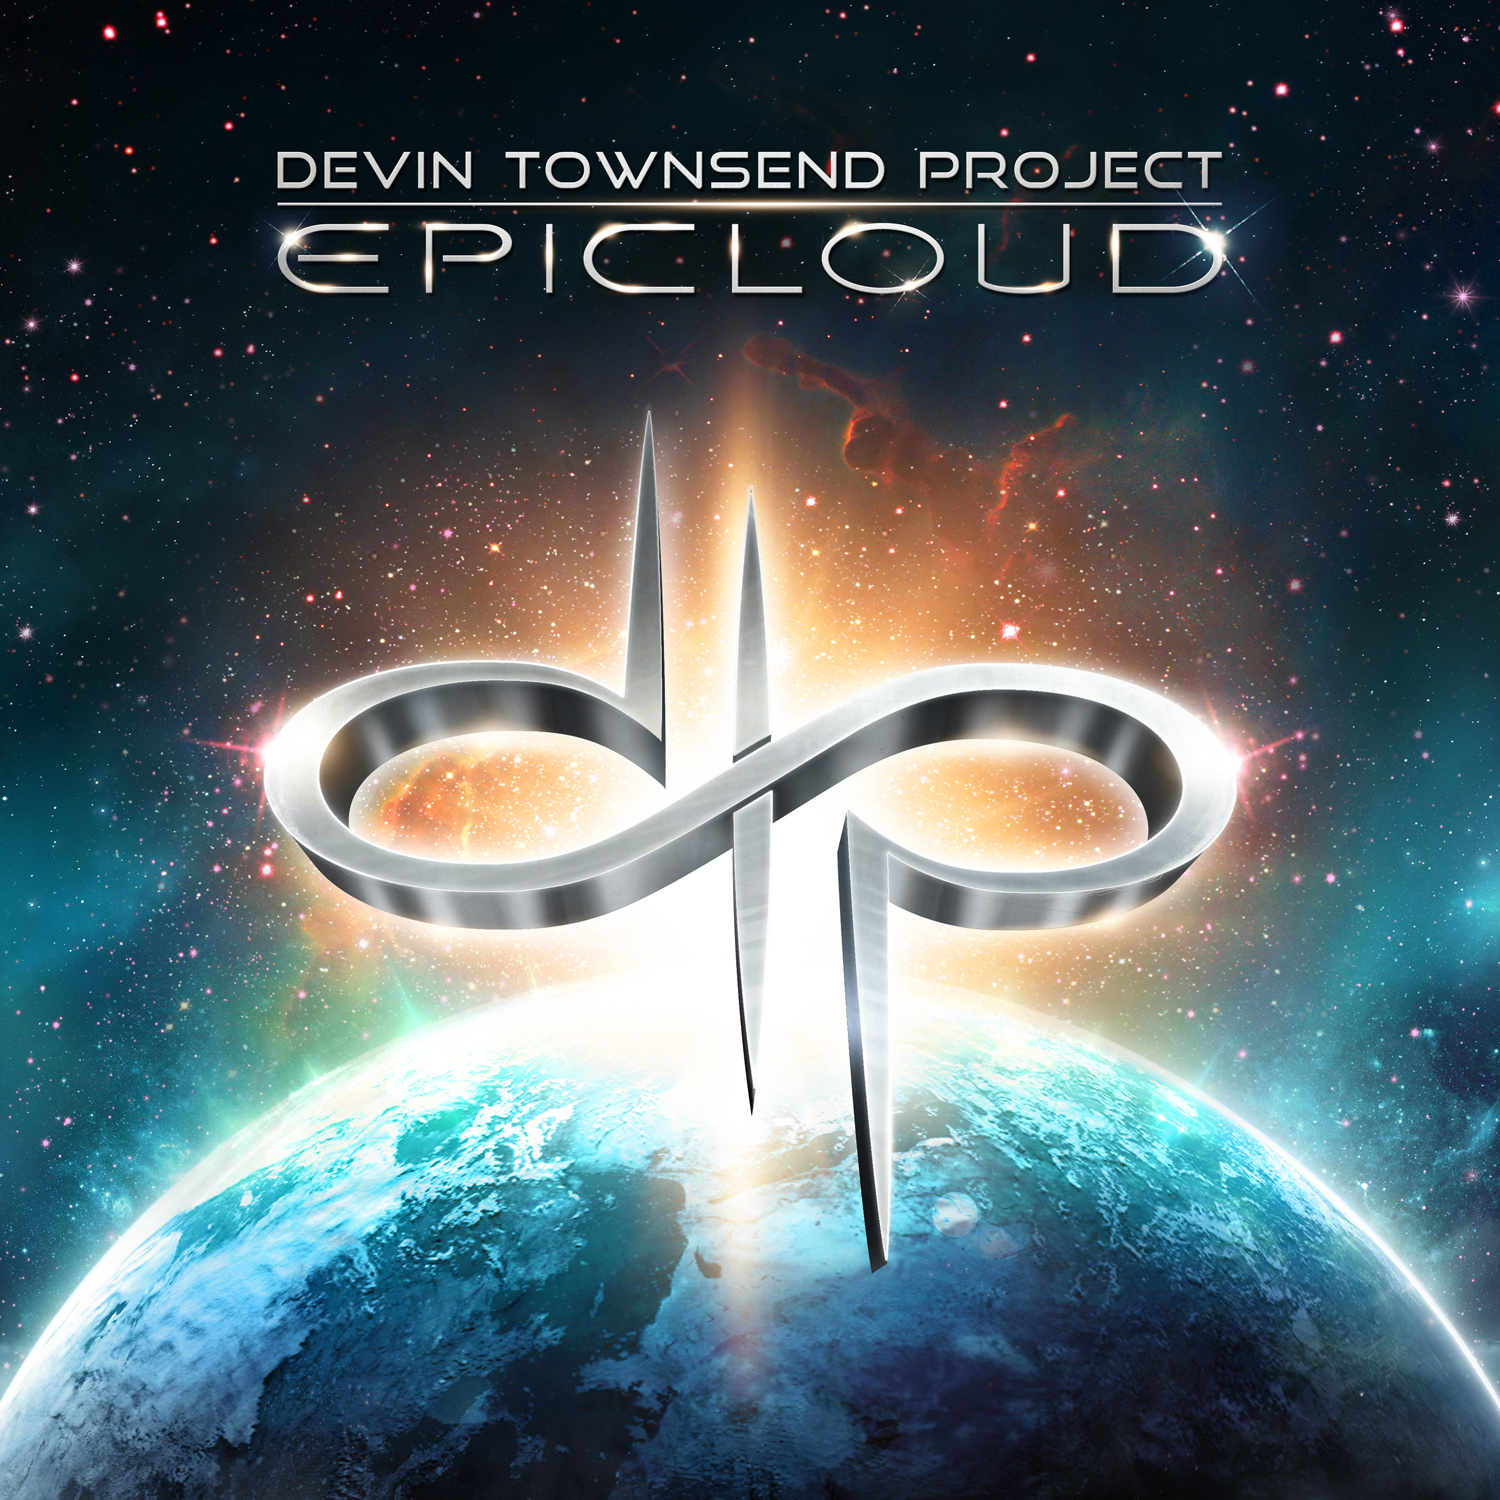 Devin Townsend Project EPICLOUD (2012)